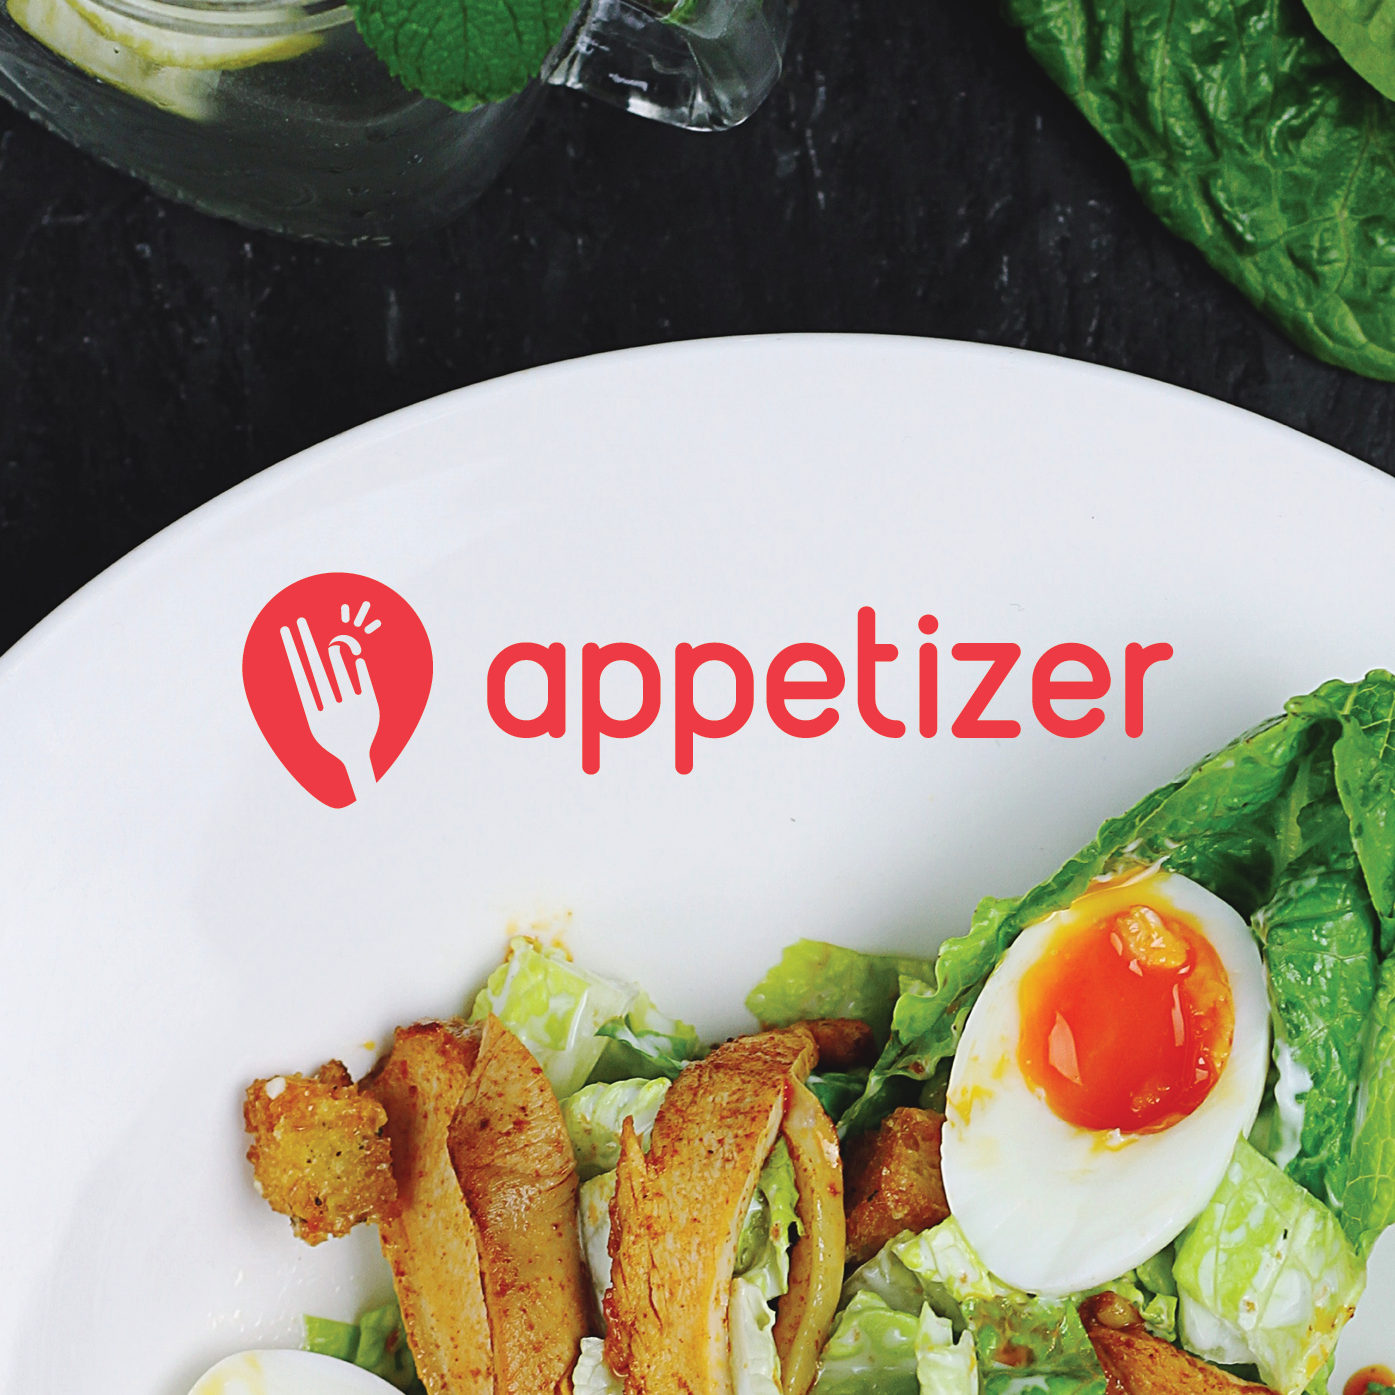 Appetizer logo design